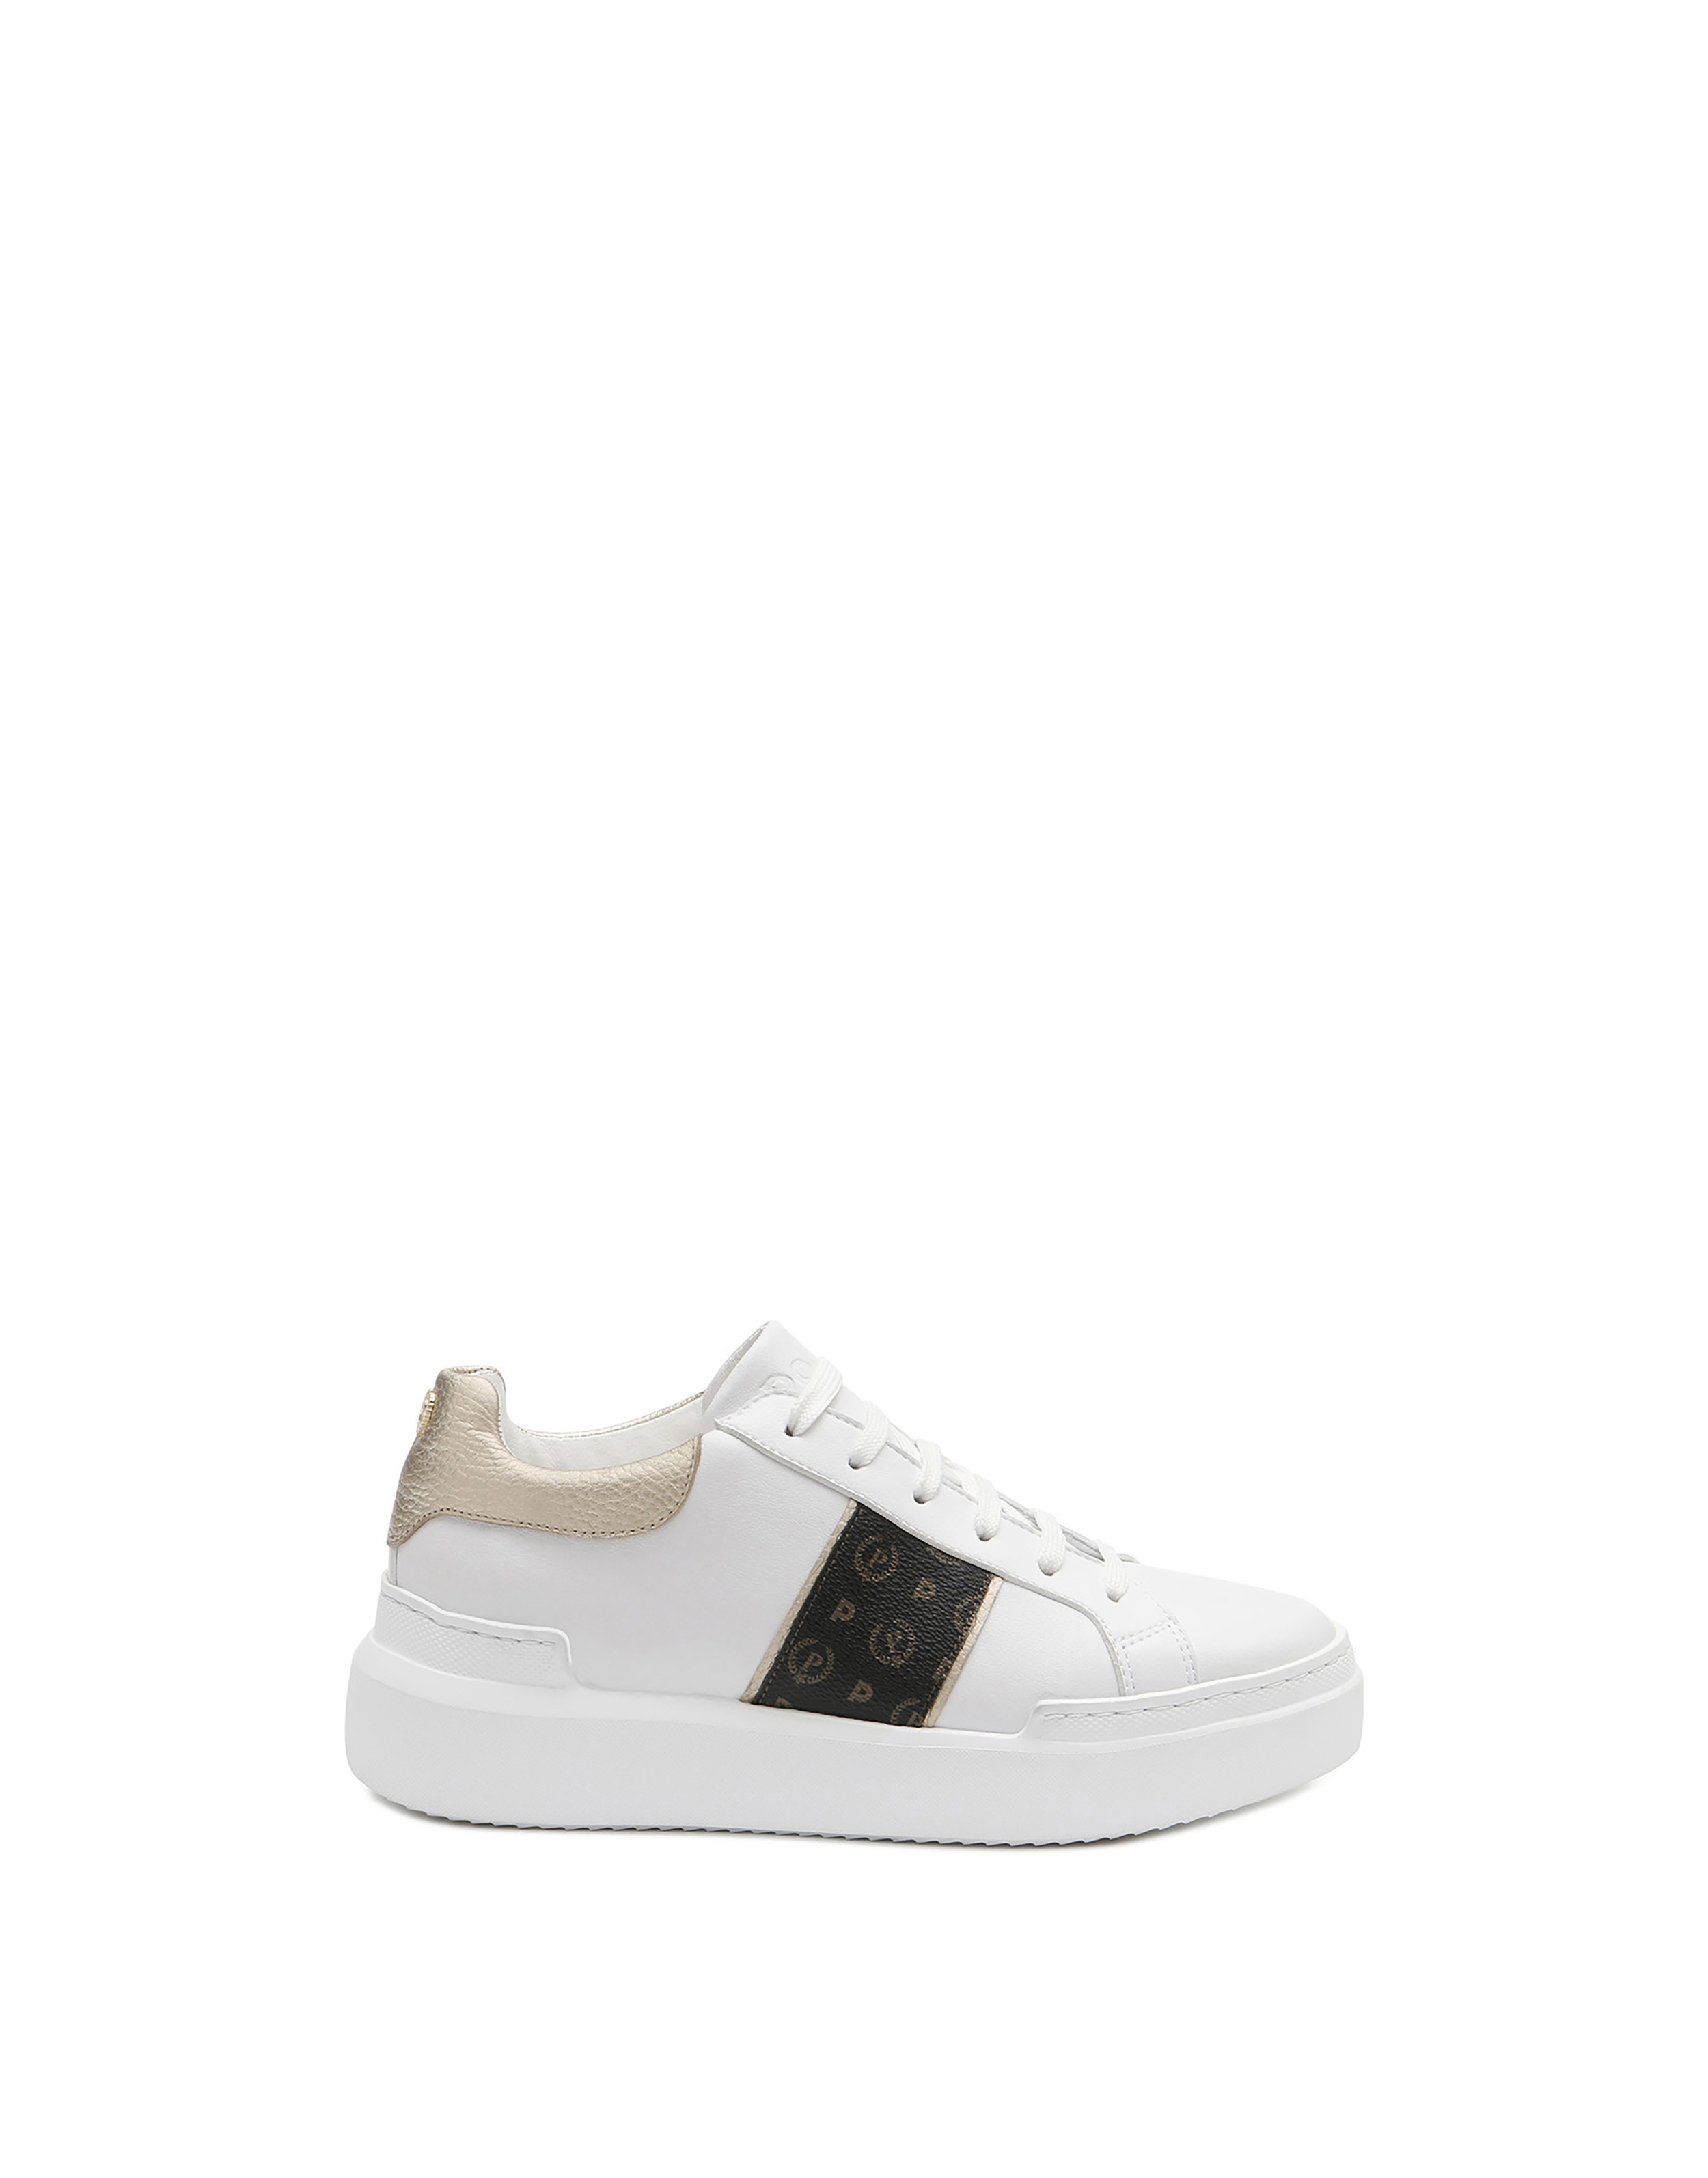 Sneakers Blackplatinumwhite Woman FW19 Pollini Online Boutique